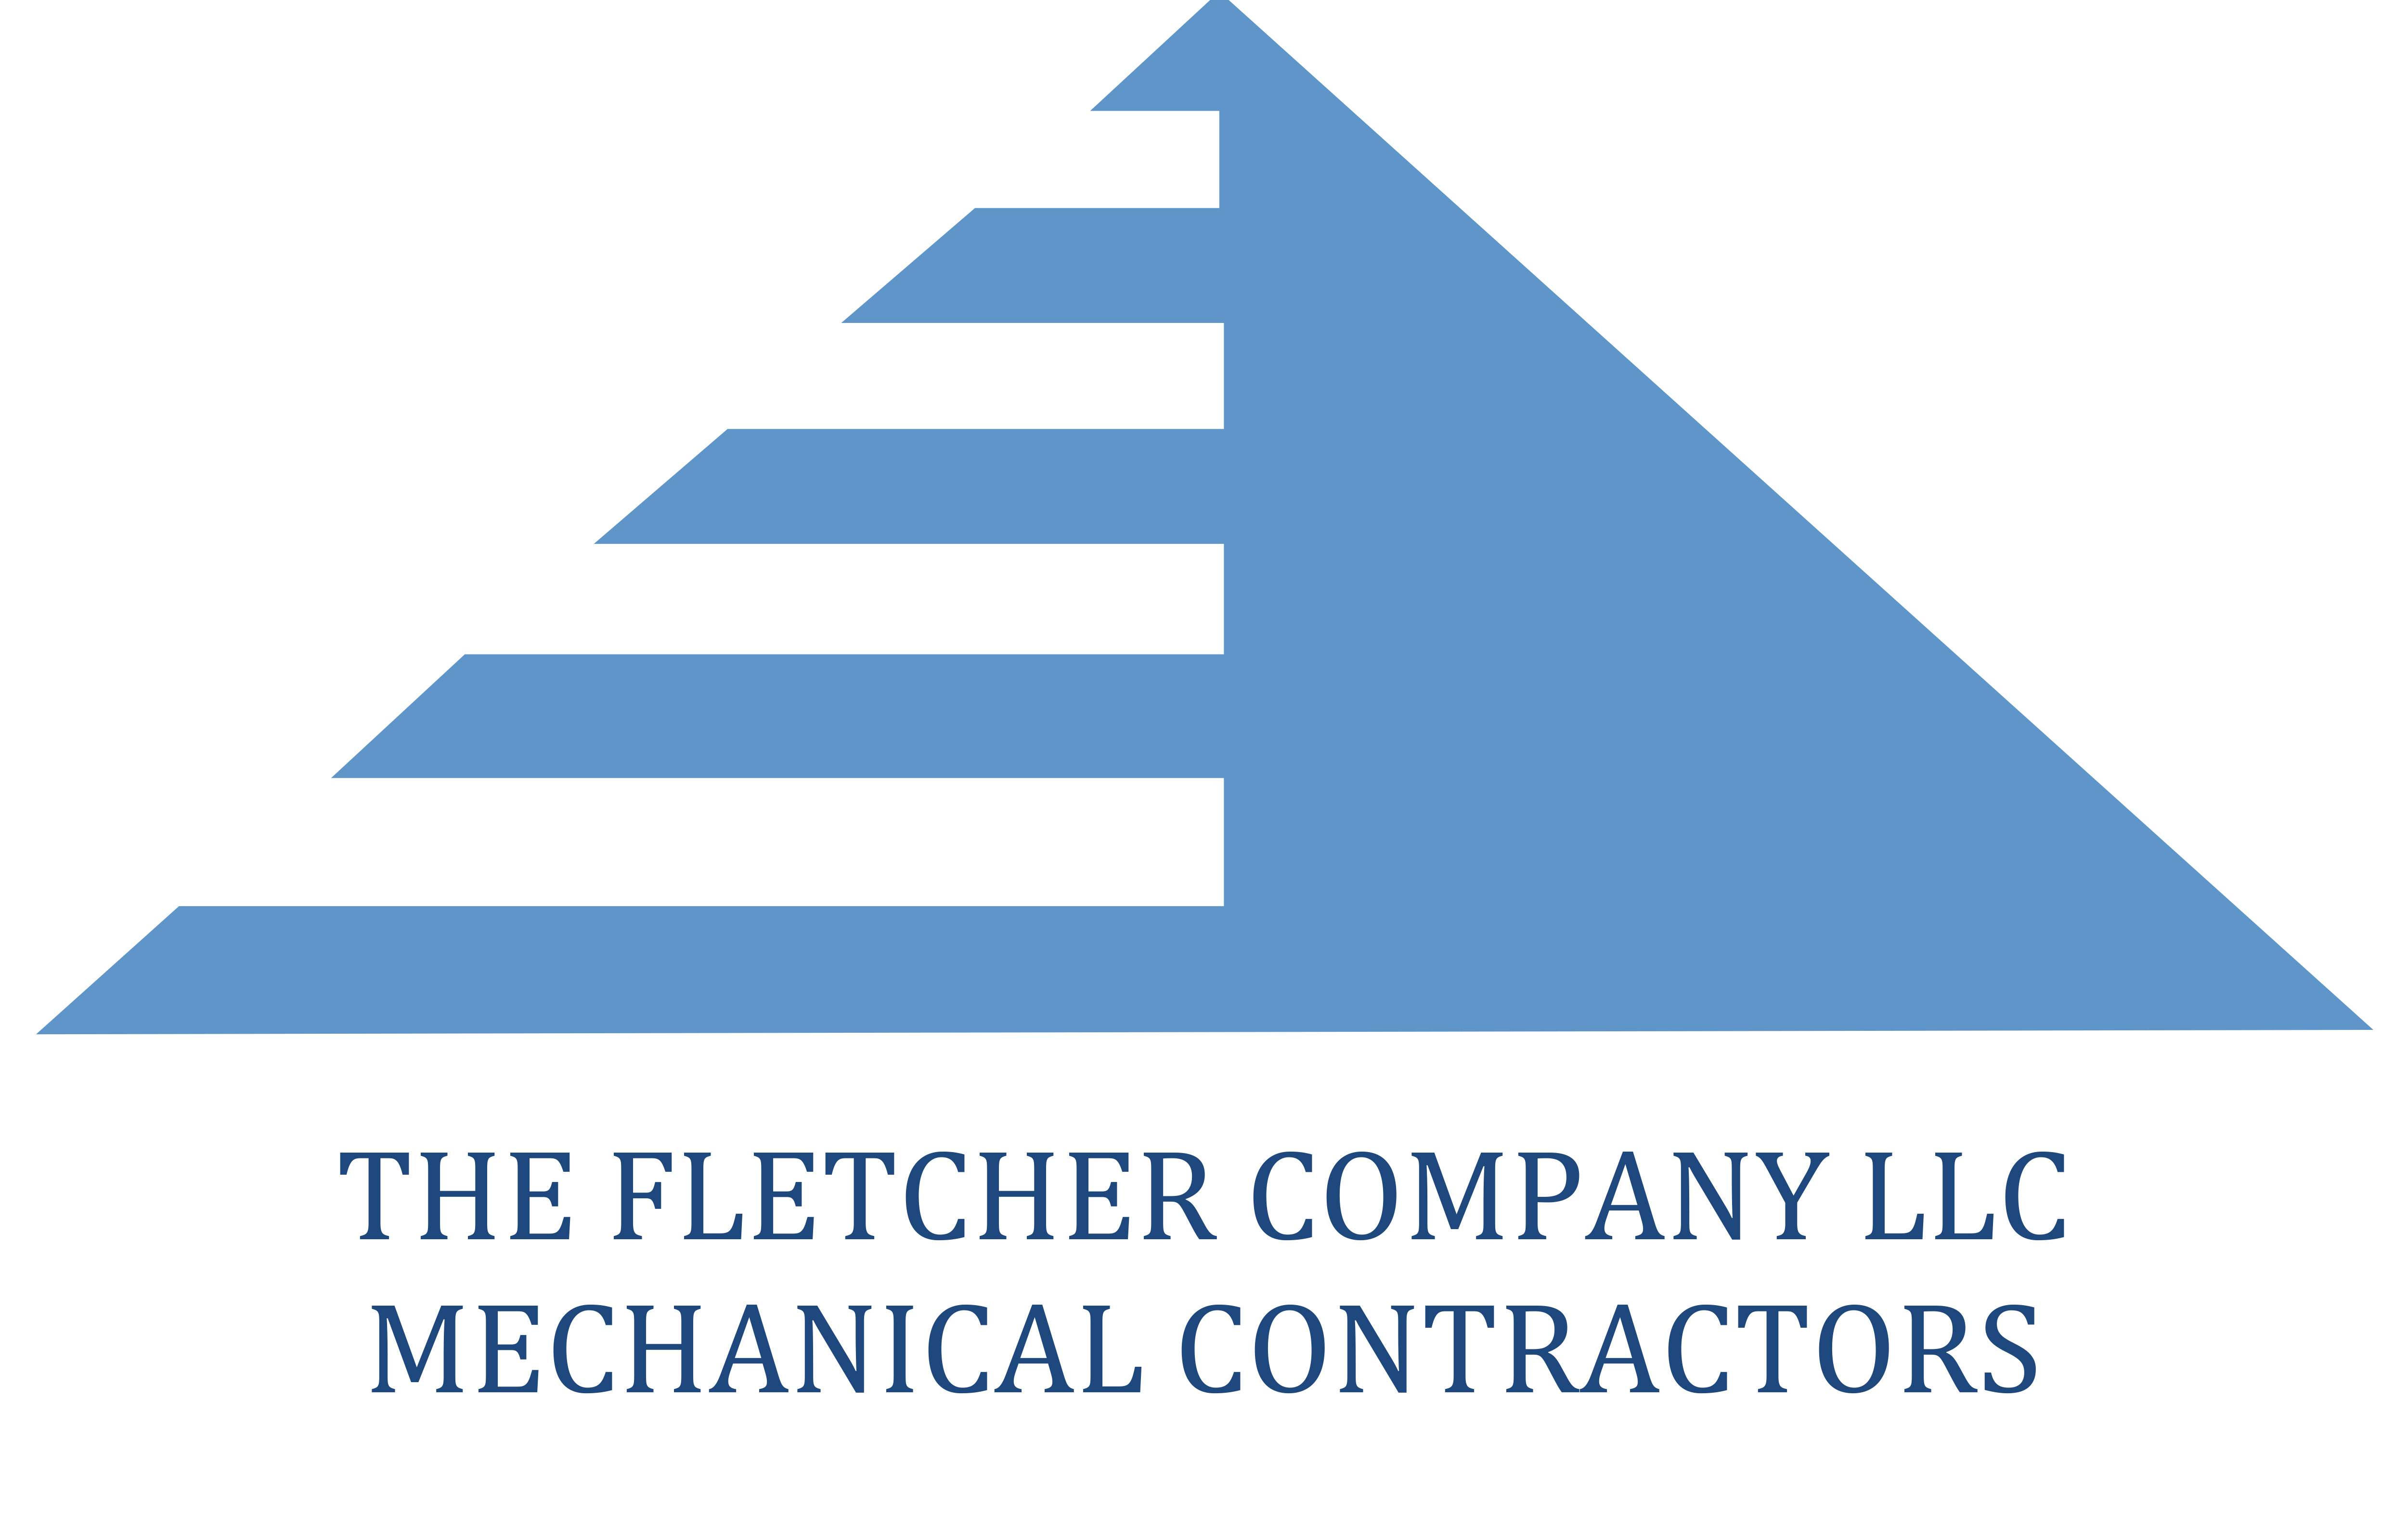 The Fletcher Company Limited Liability Company Mechanical Contractors